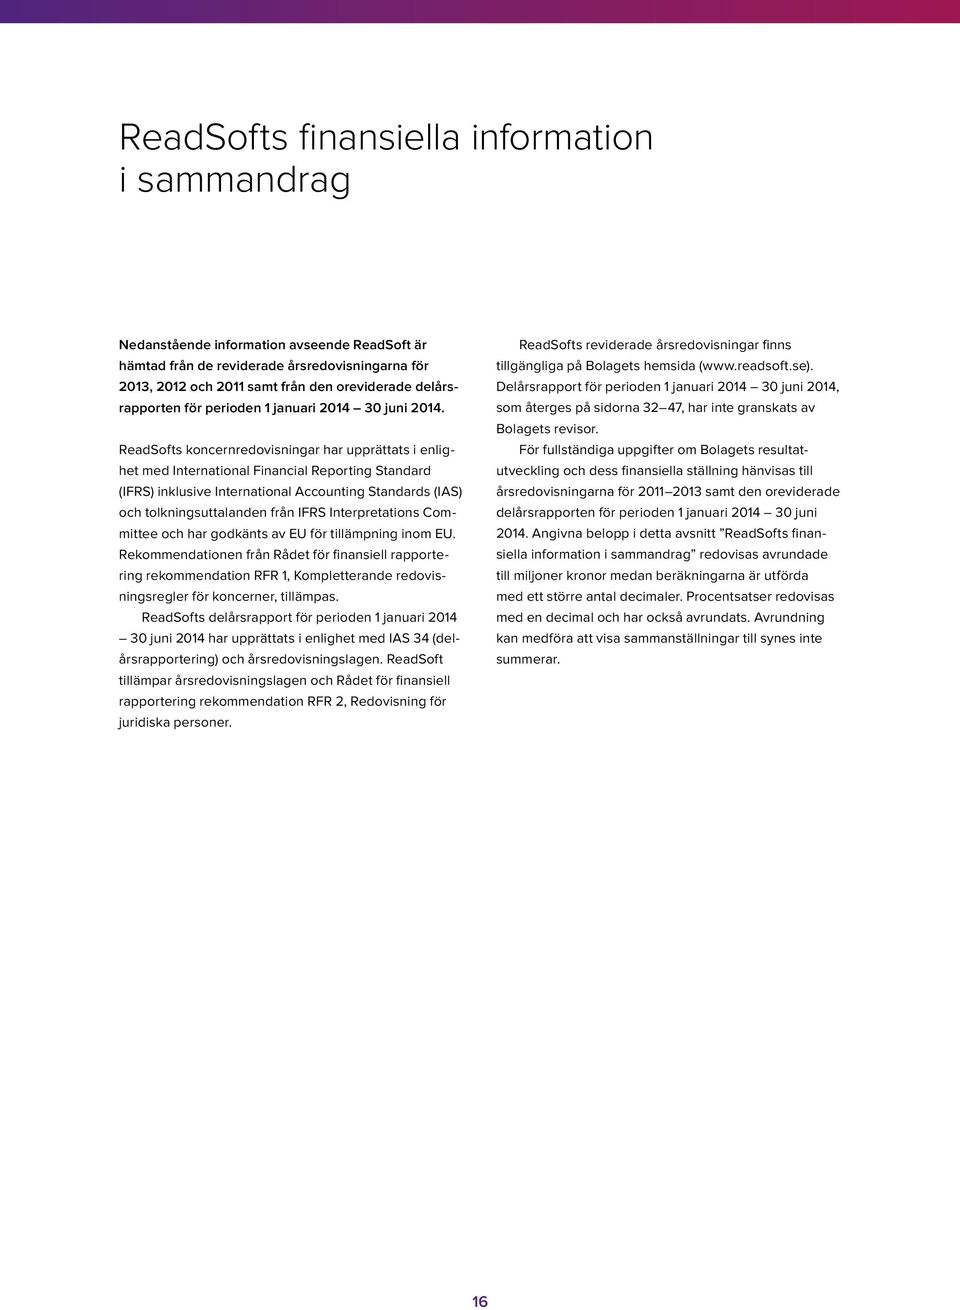 ReadSofts koncernredovisningar har upprättats i enlighet med International Financial Reporting Standard (IFRS) inklusive International Accounting Standards (IAS) och tolkningsuttalanden från IFRS